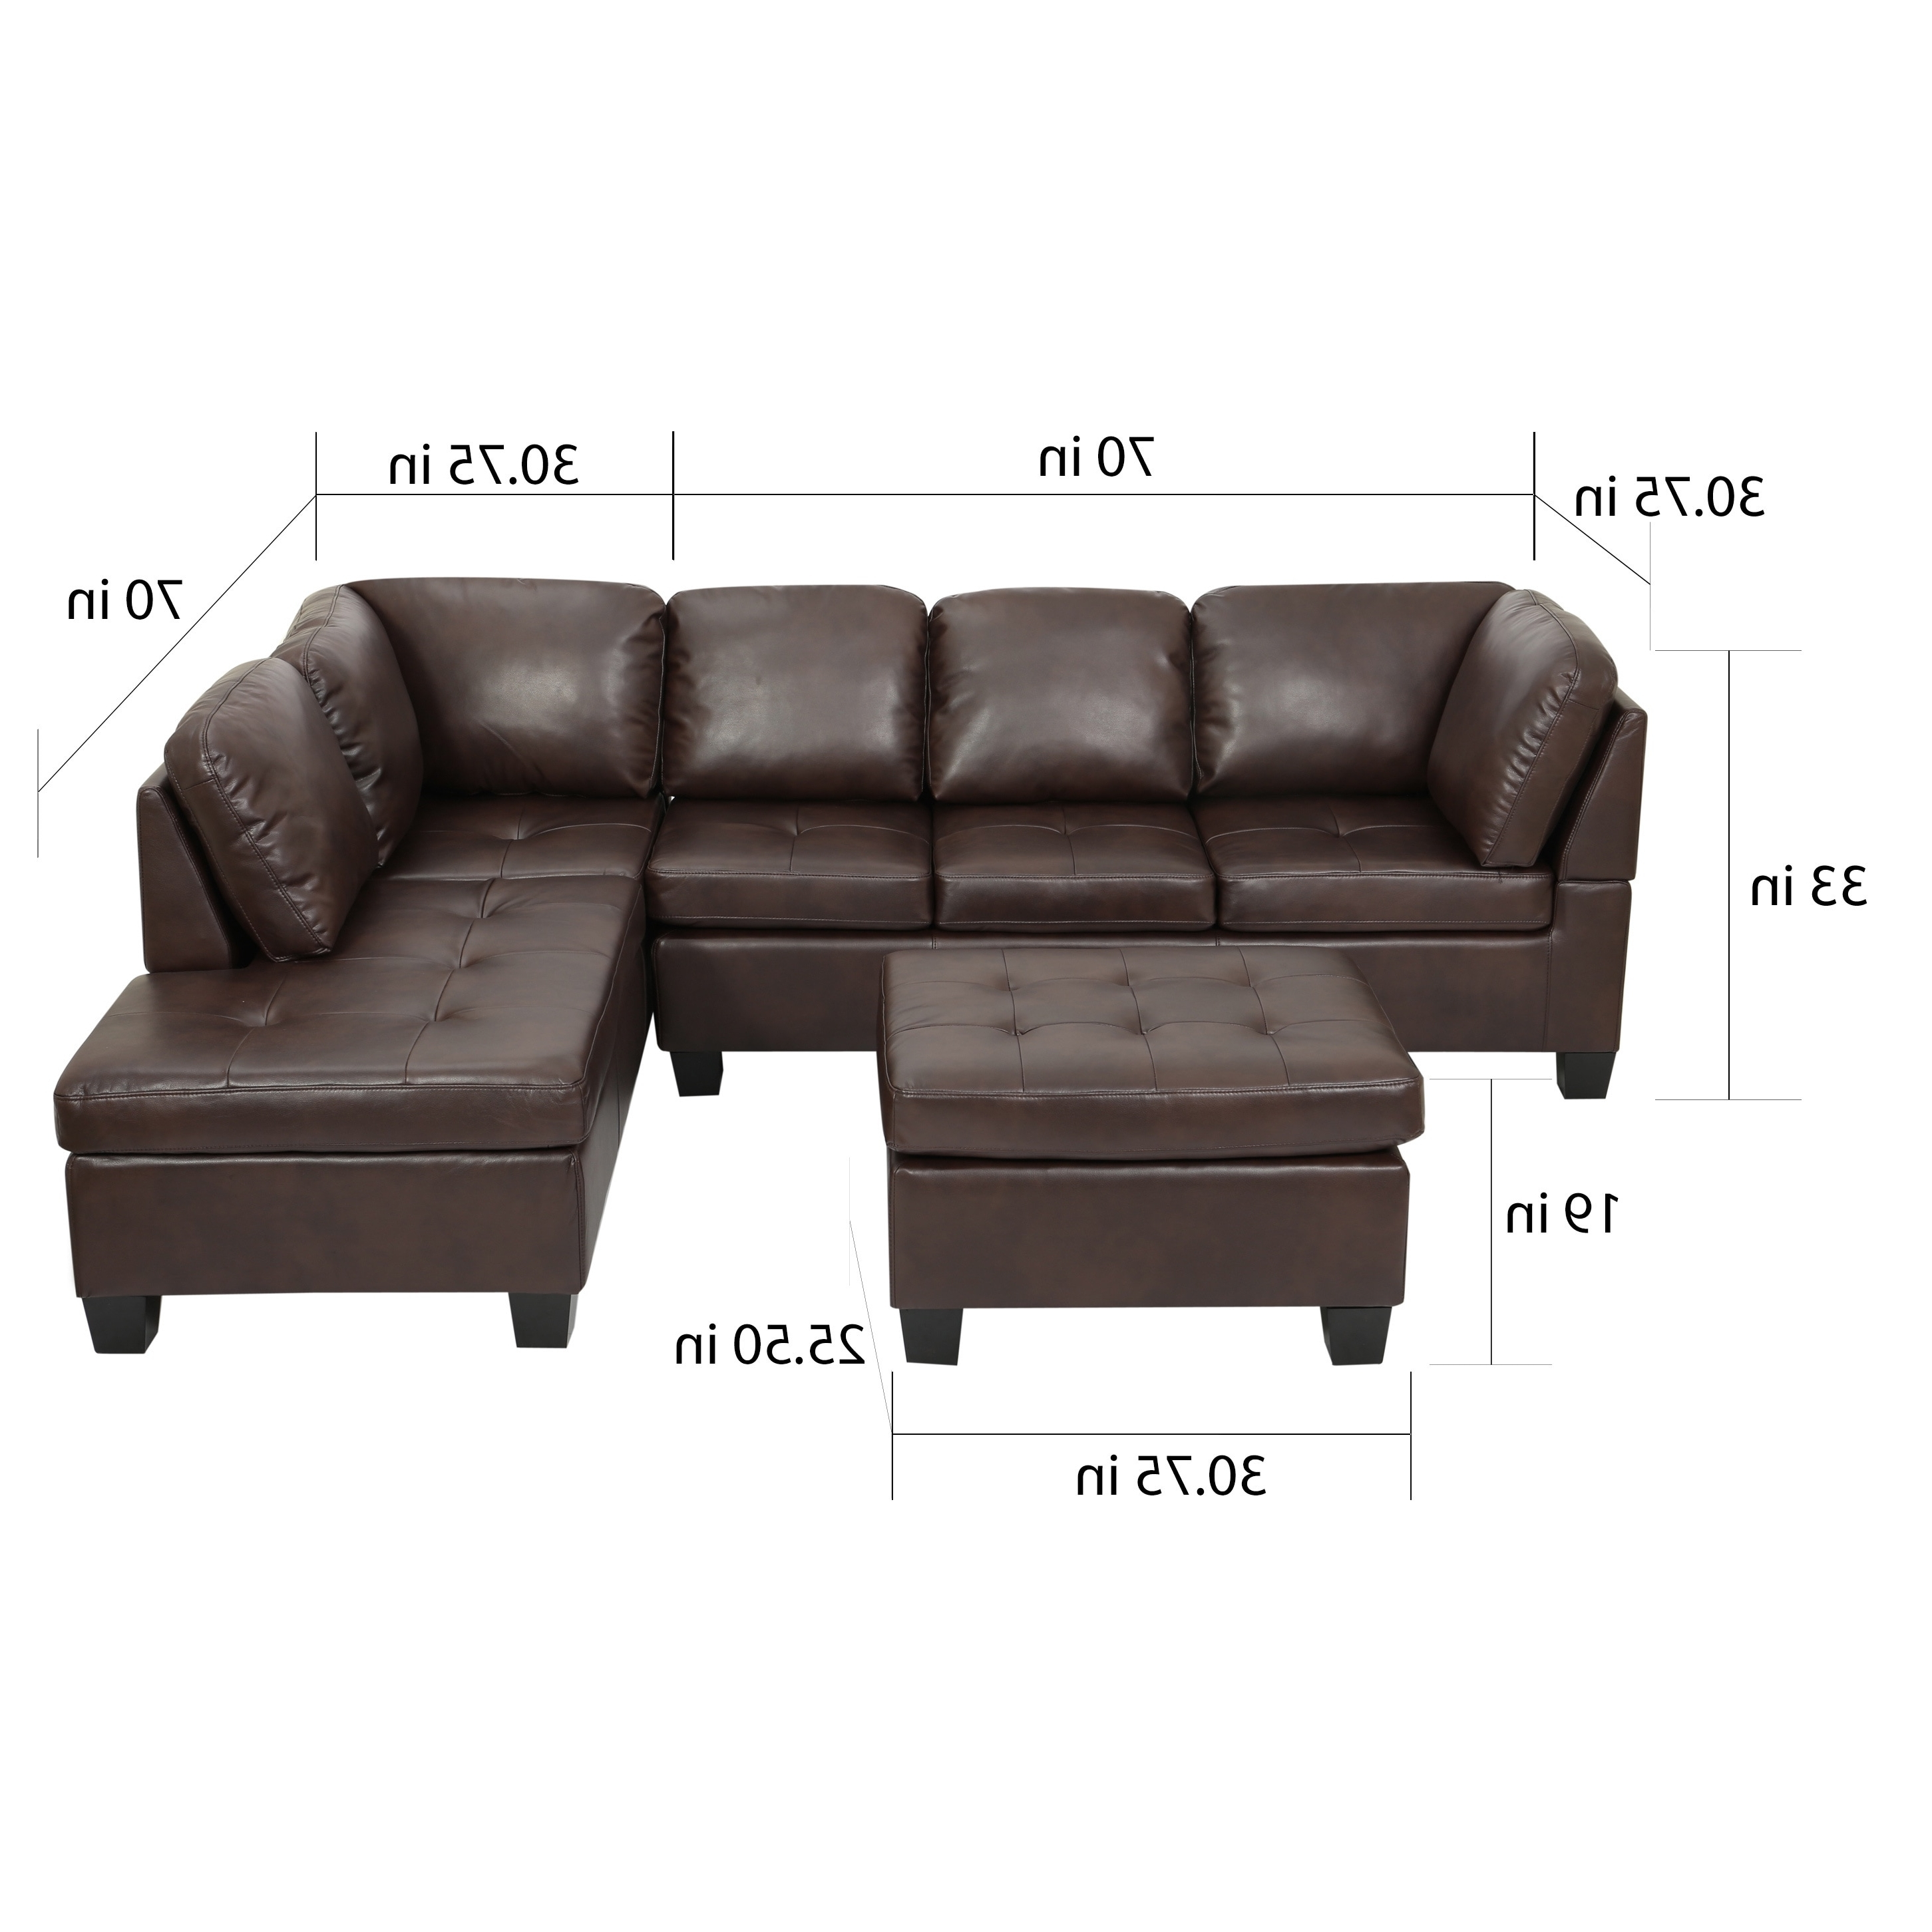 Canterbury Leather Sofas Intended For Most Recent Canterbury 3 Piece Pu Leather Sectional Sofa Setchristopher (View 9 of 20)